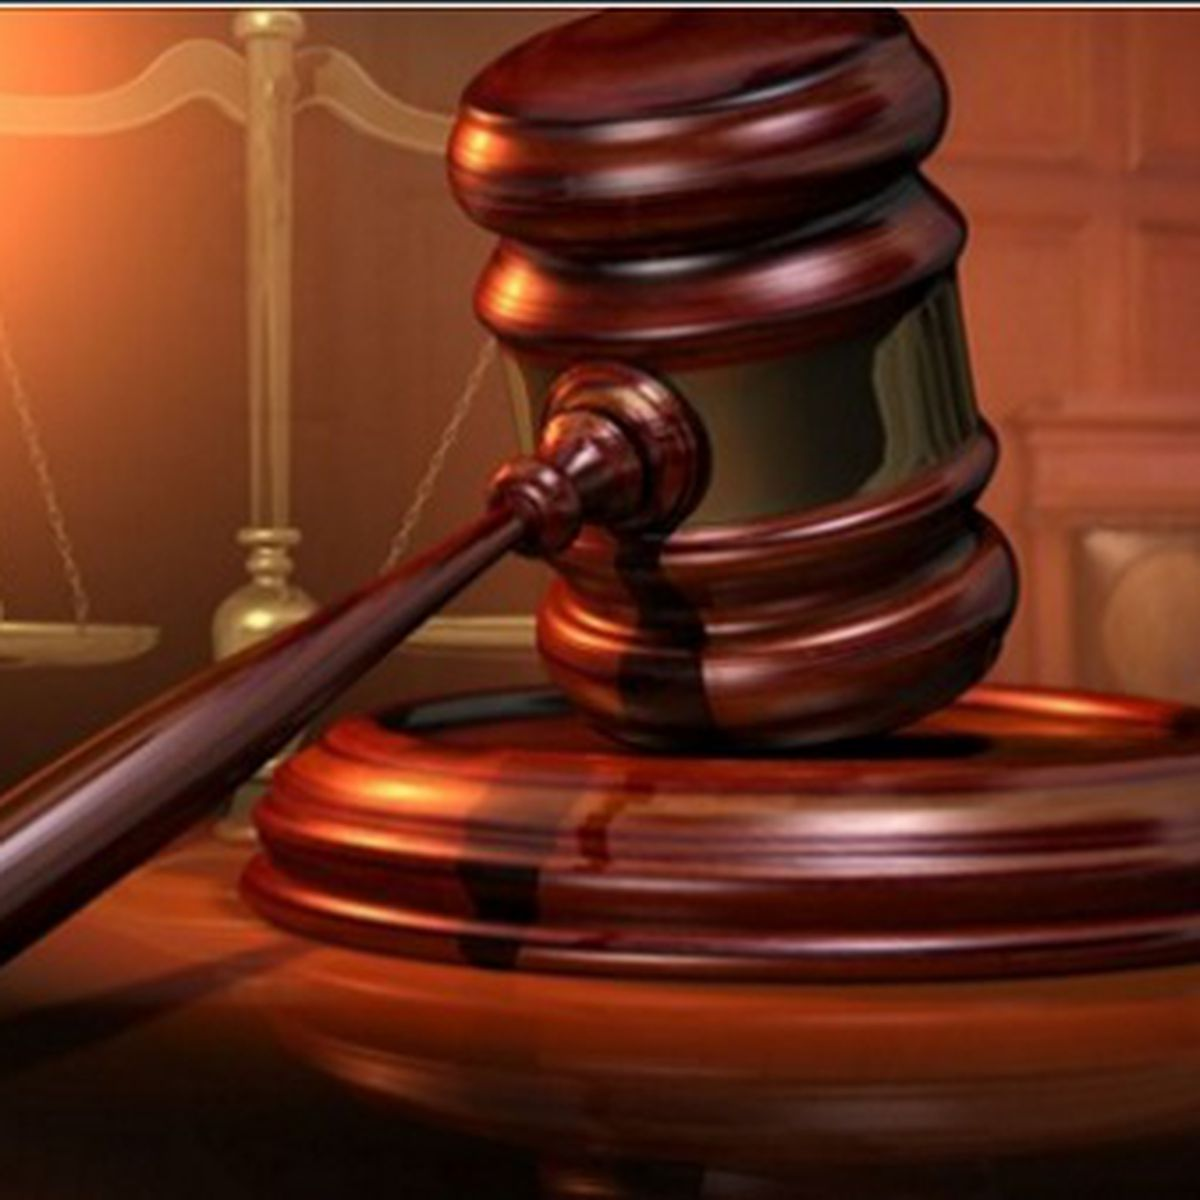 Update Former Ssa Judge Sentenced In Fraud And Corruption Case